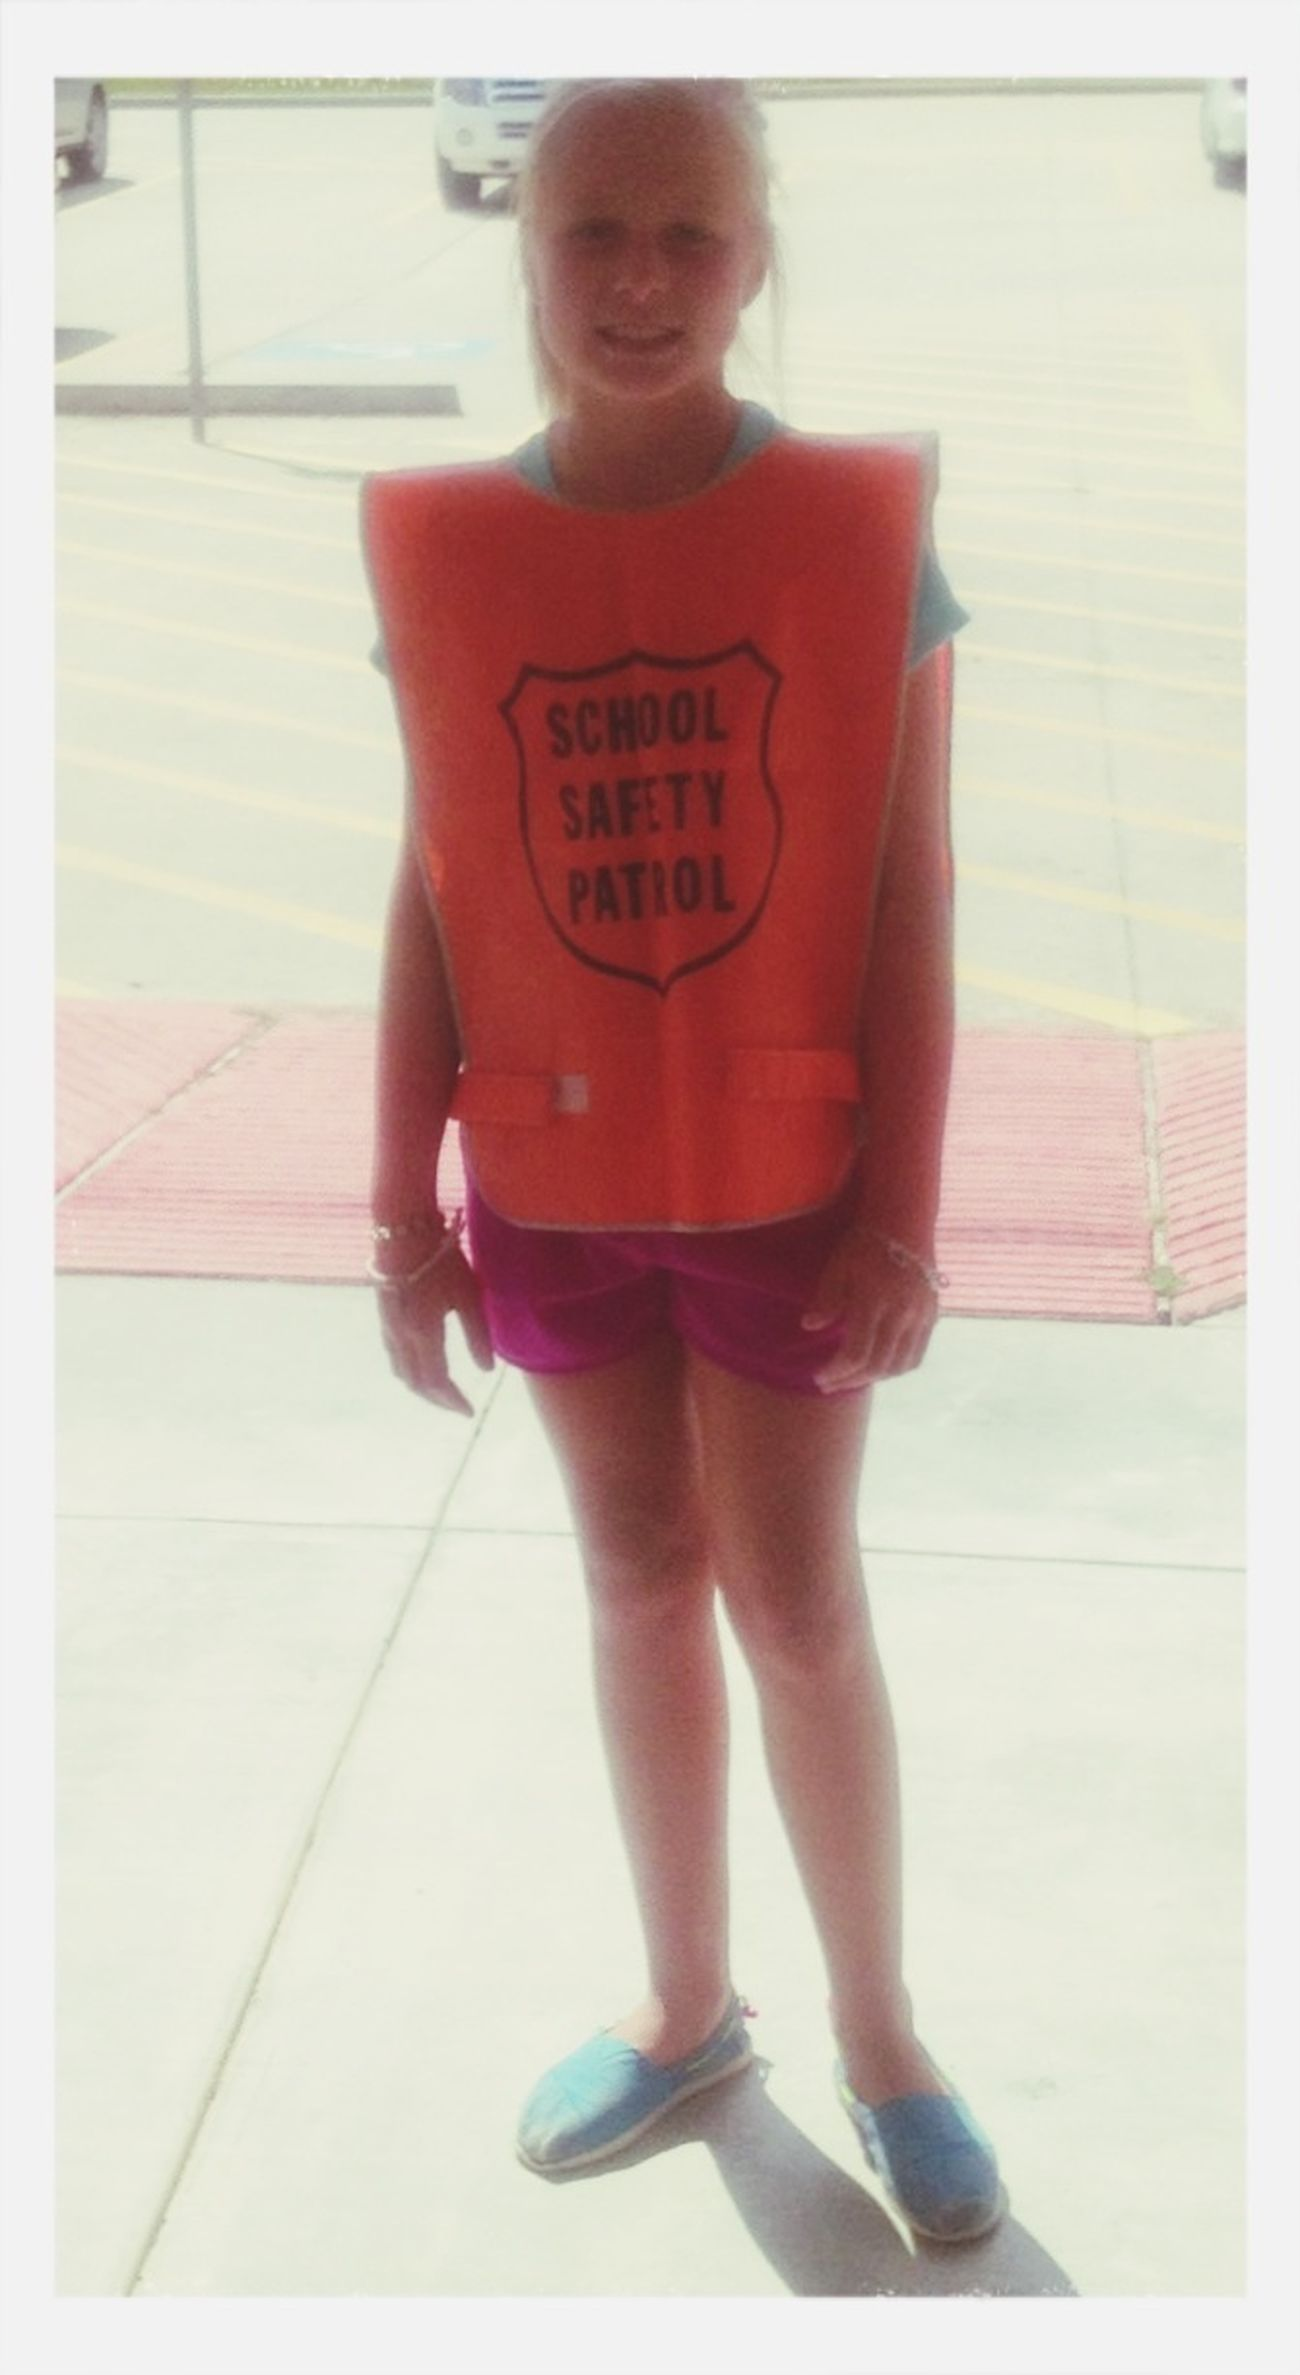 LULU'S 1st day of safety patrol.